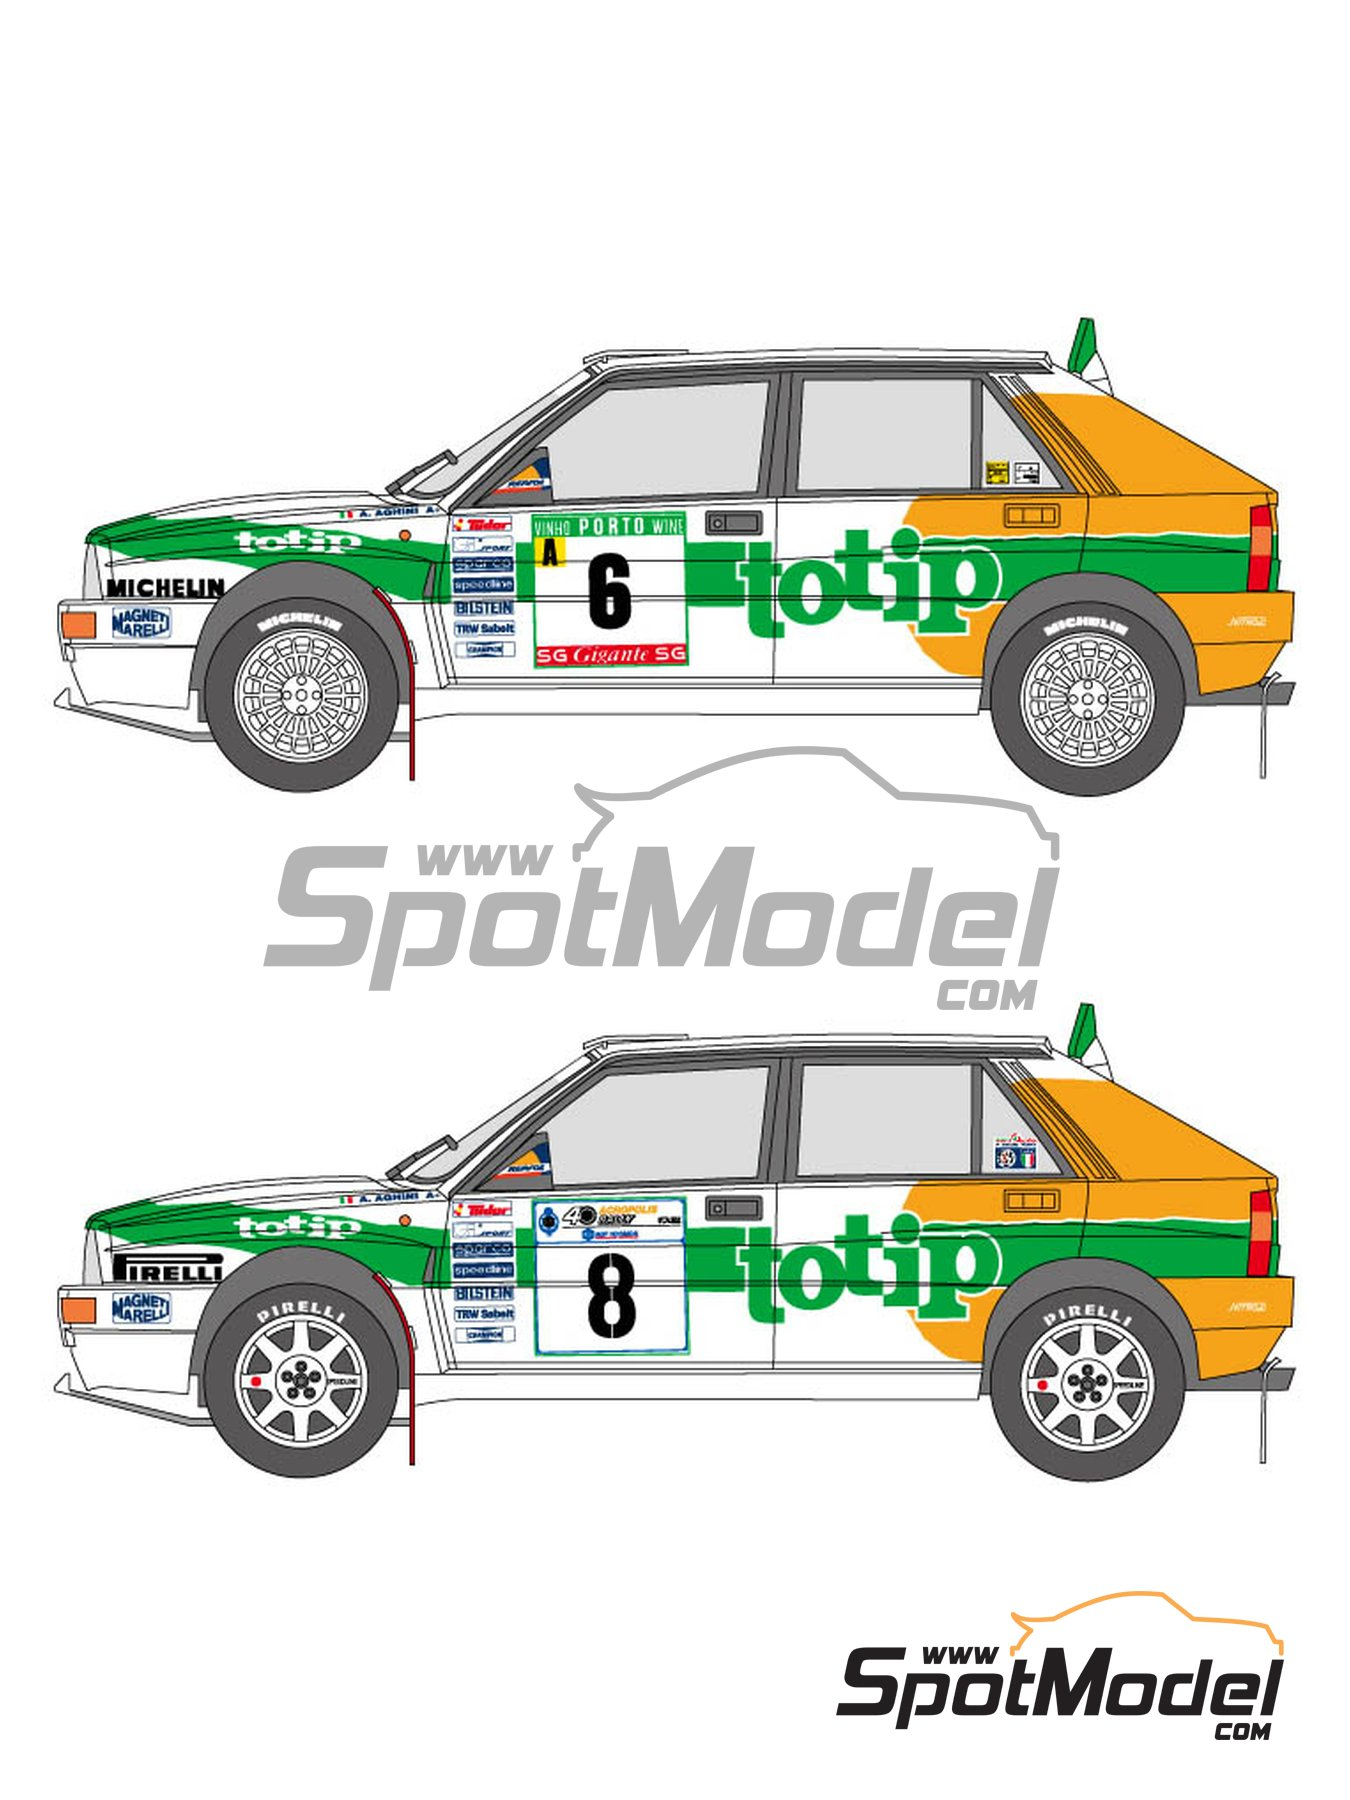 Lancia Super Delta Totip - Acropolis rally, Portugal Rally 1993 | Marking / livery in 1/24 scale manufactured by Shunko Models (ref. SHK-D326) image